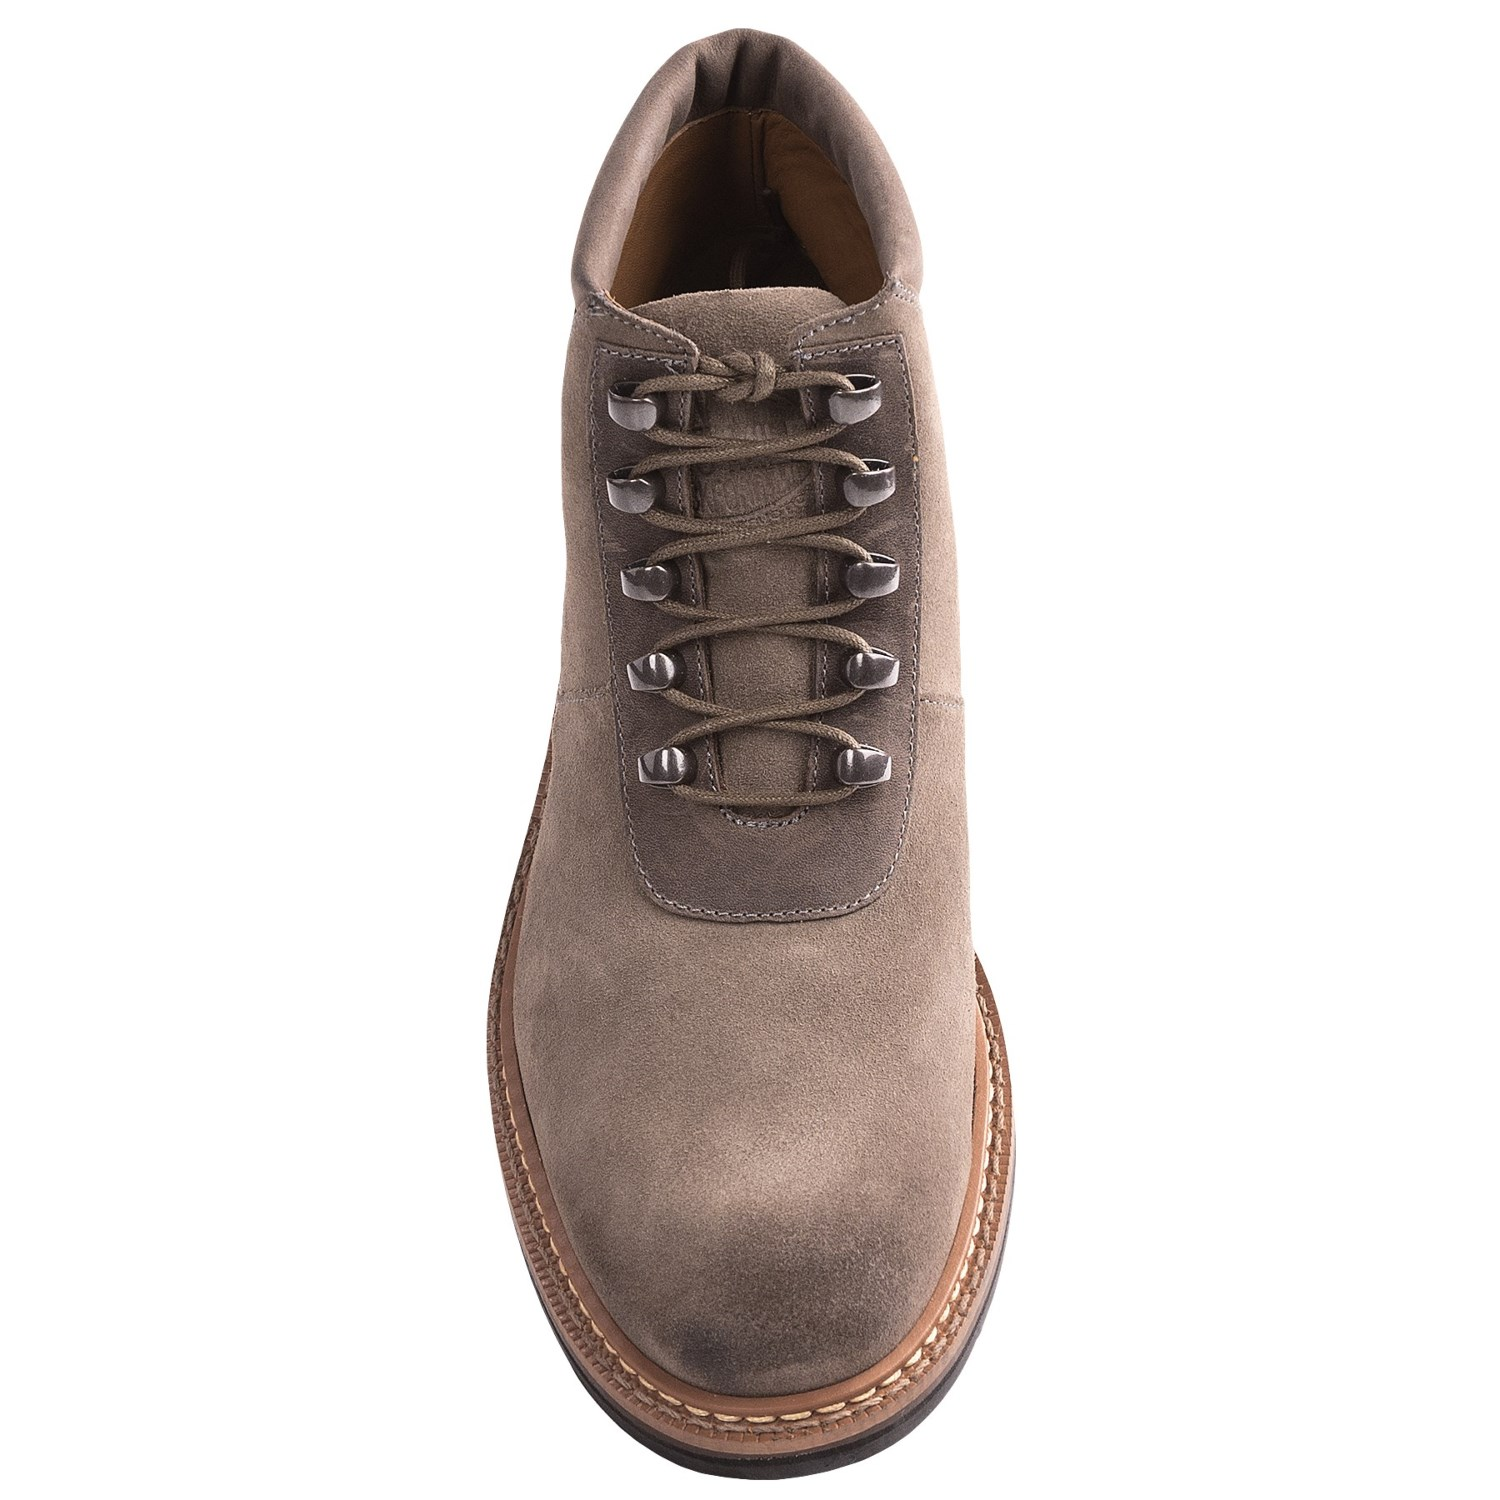 d985f9667a9 Wolverine 1000 Mile Wilton Chukka Boots - Suede, Factory 2nds (For Men)